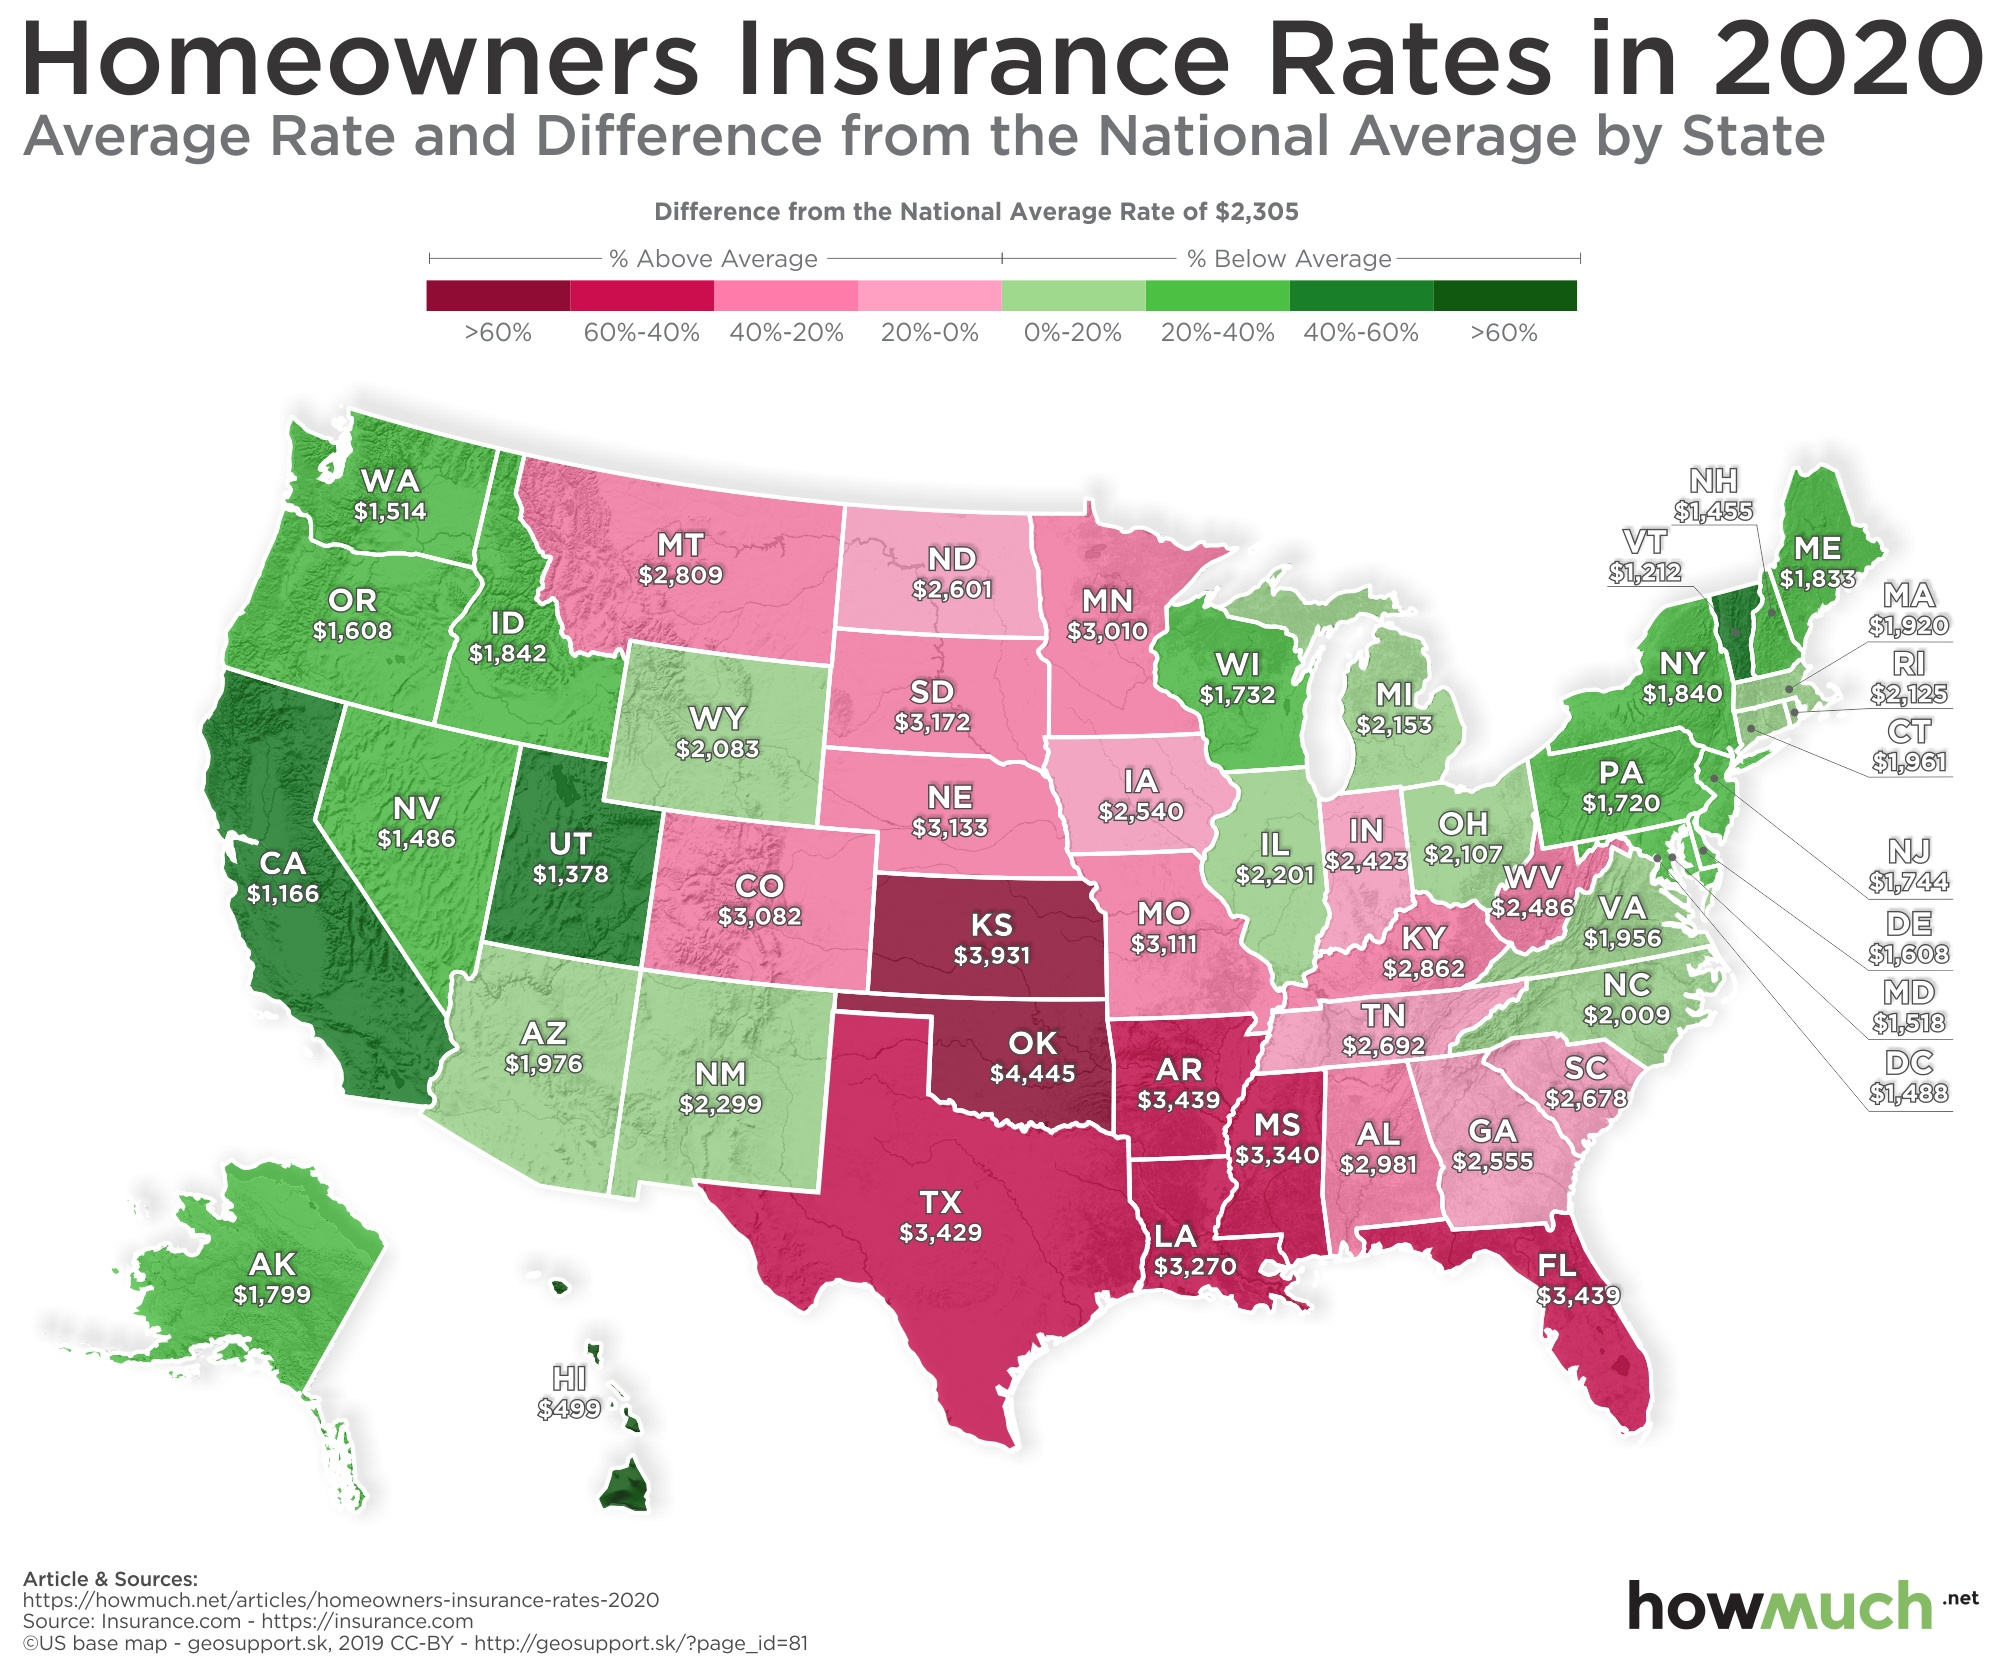 Mapped: Average Homeowners Insurance Rates for Each State